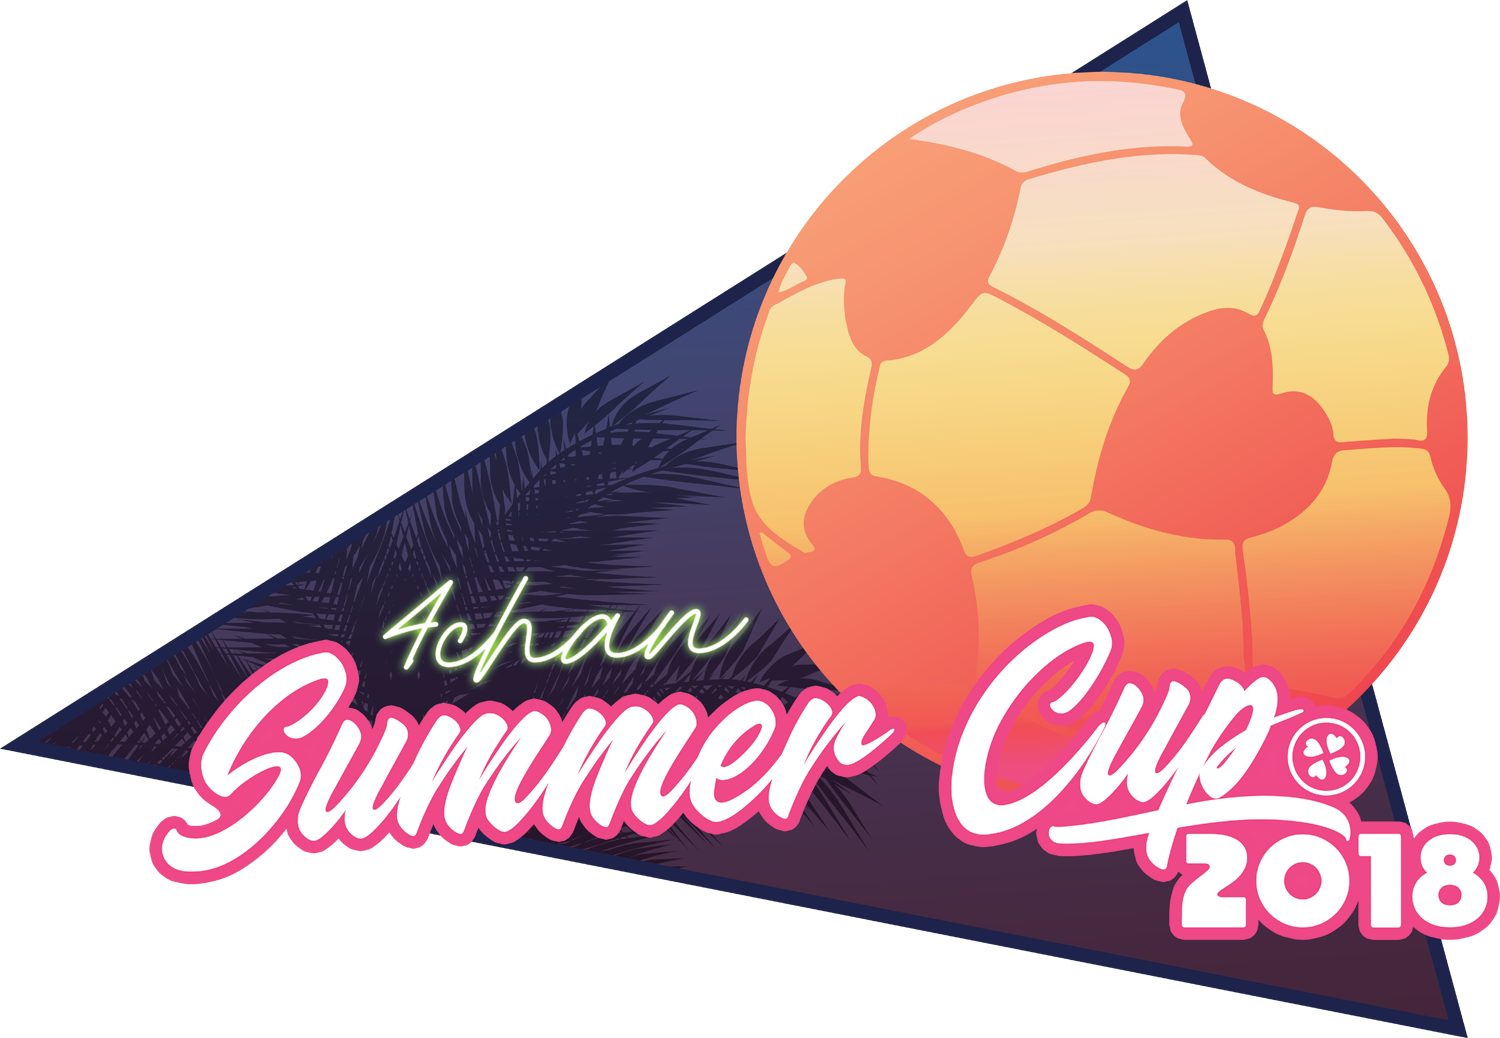 2018 4chan Summer Cup